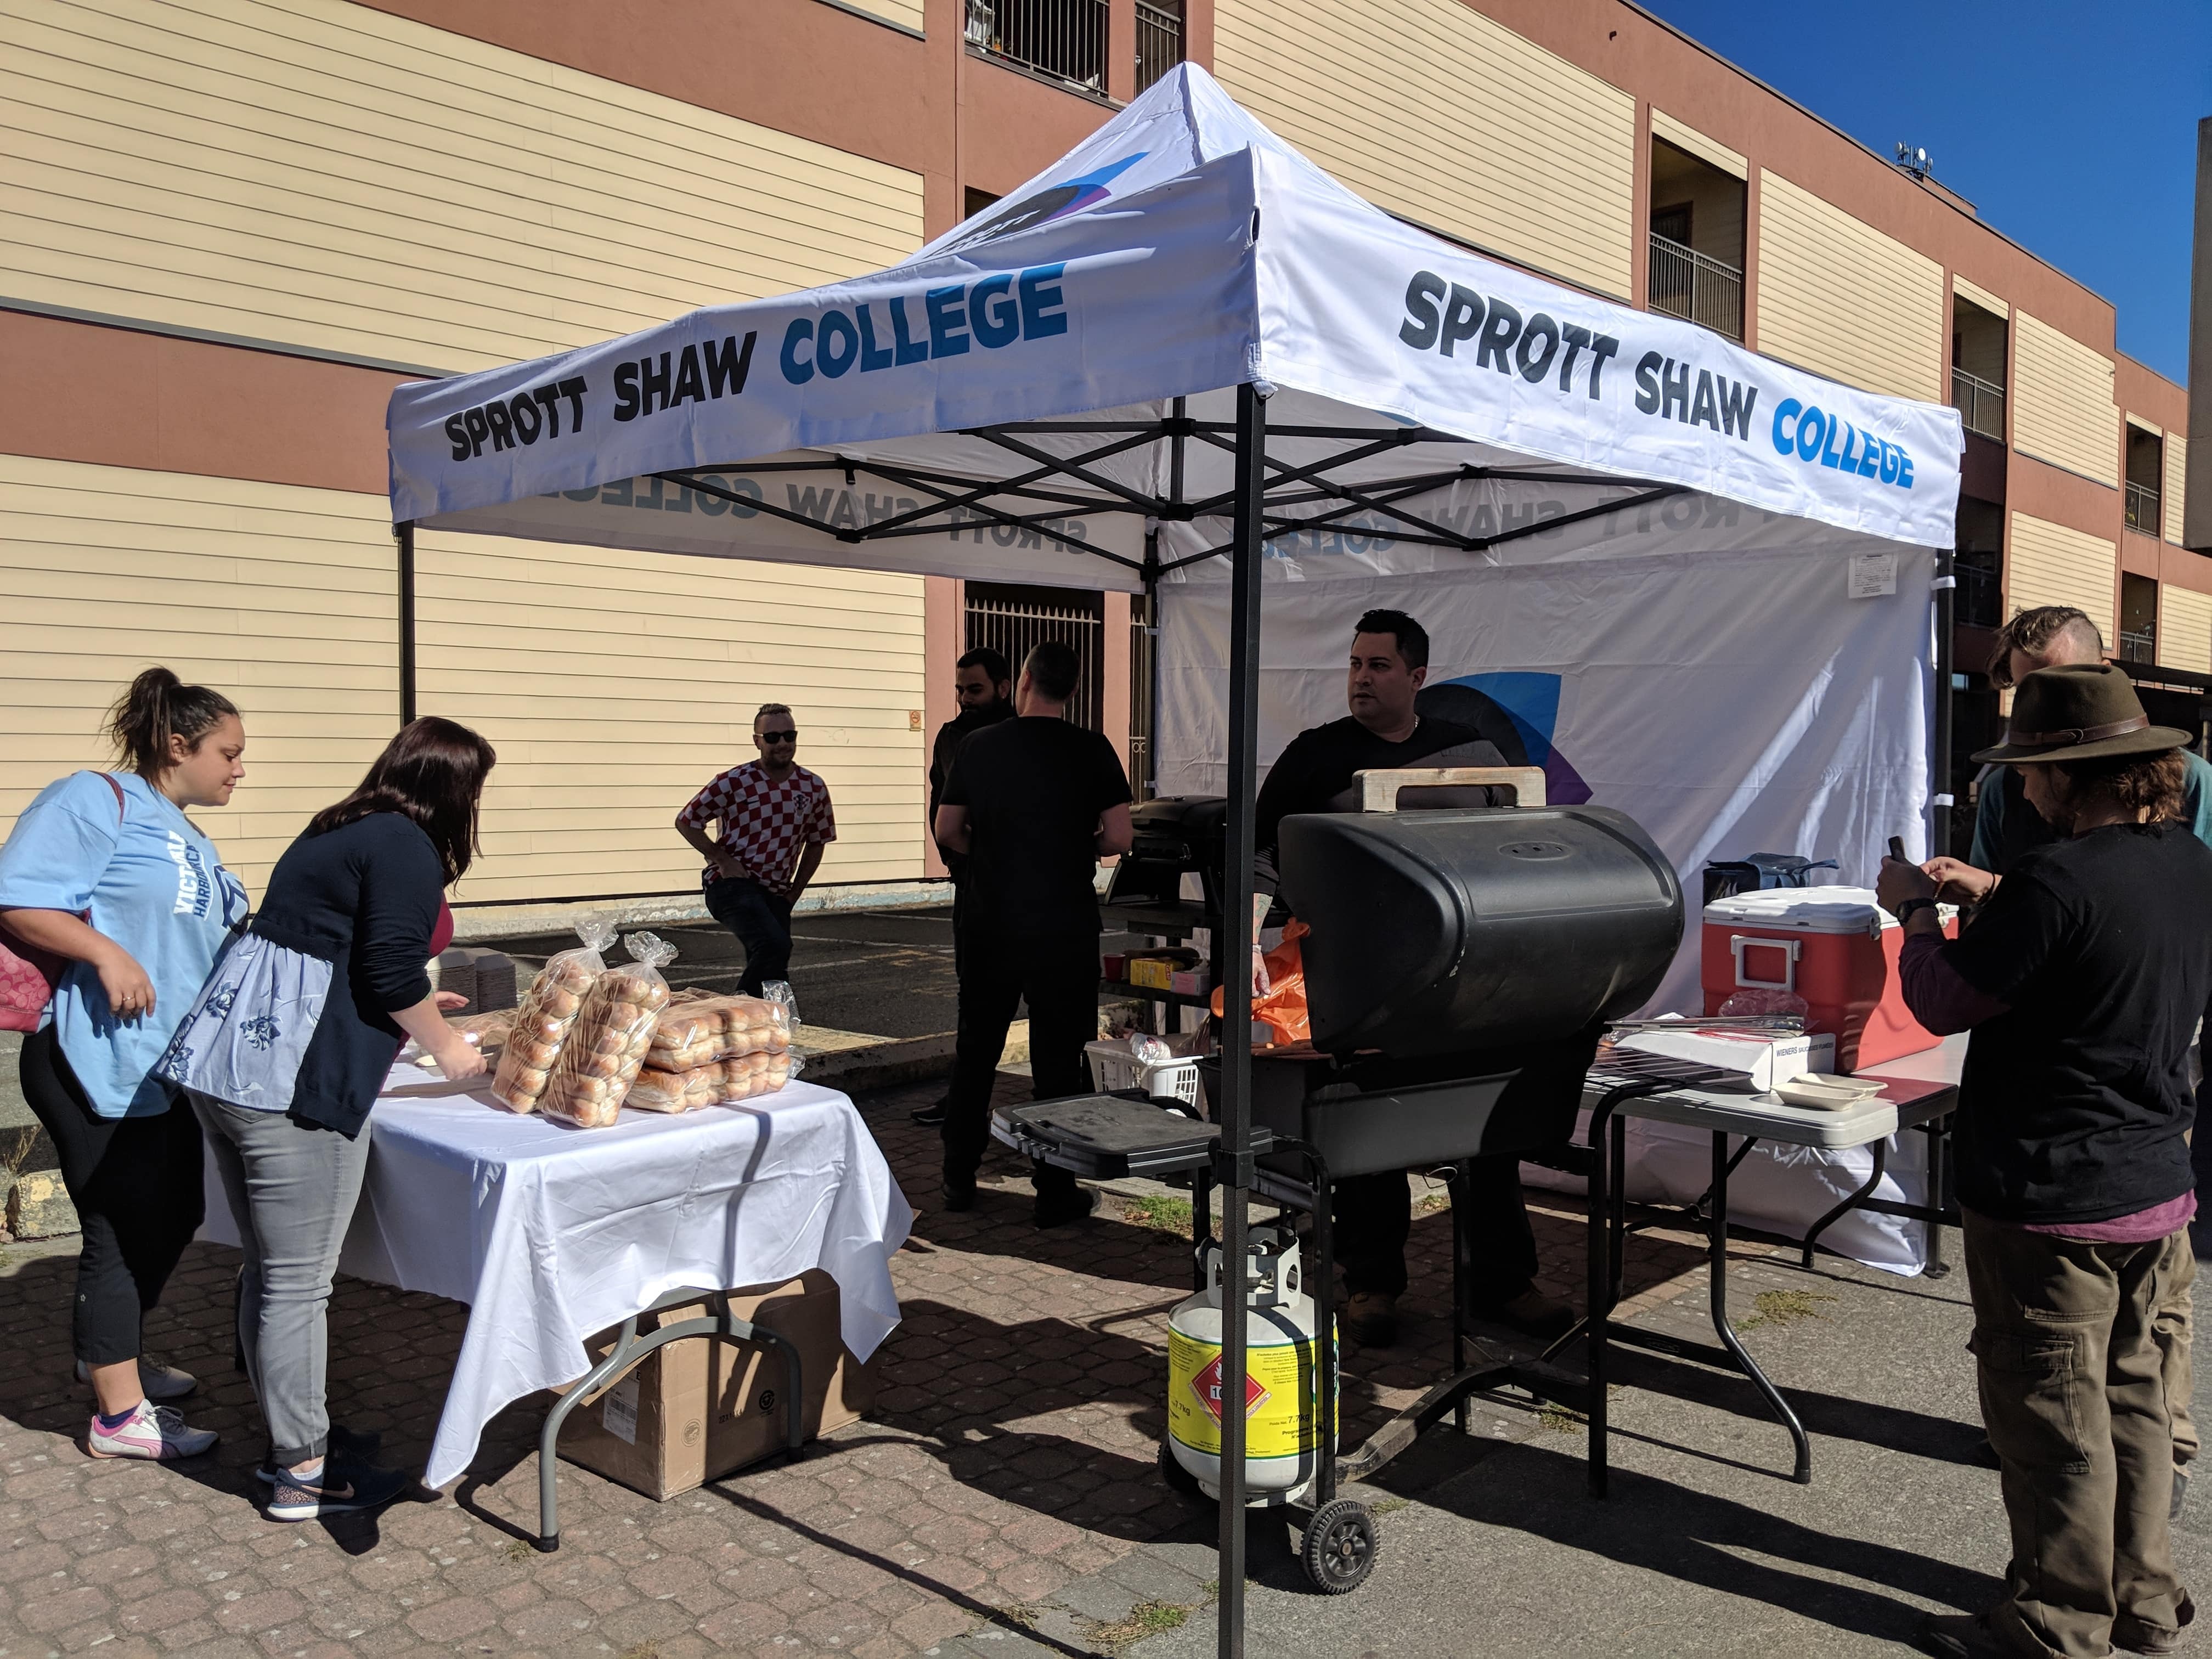 sprott shaw college victoria campus students